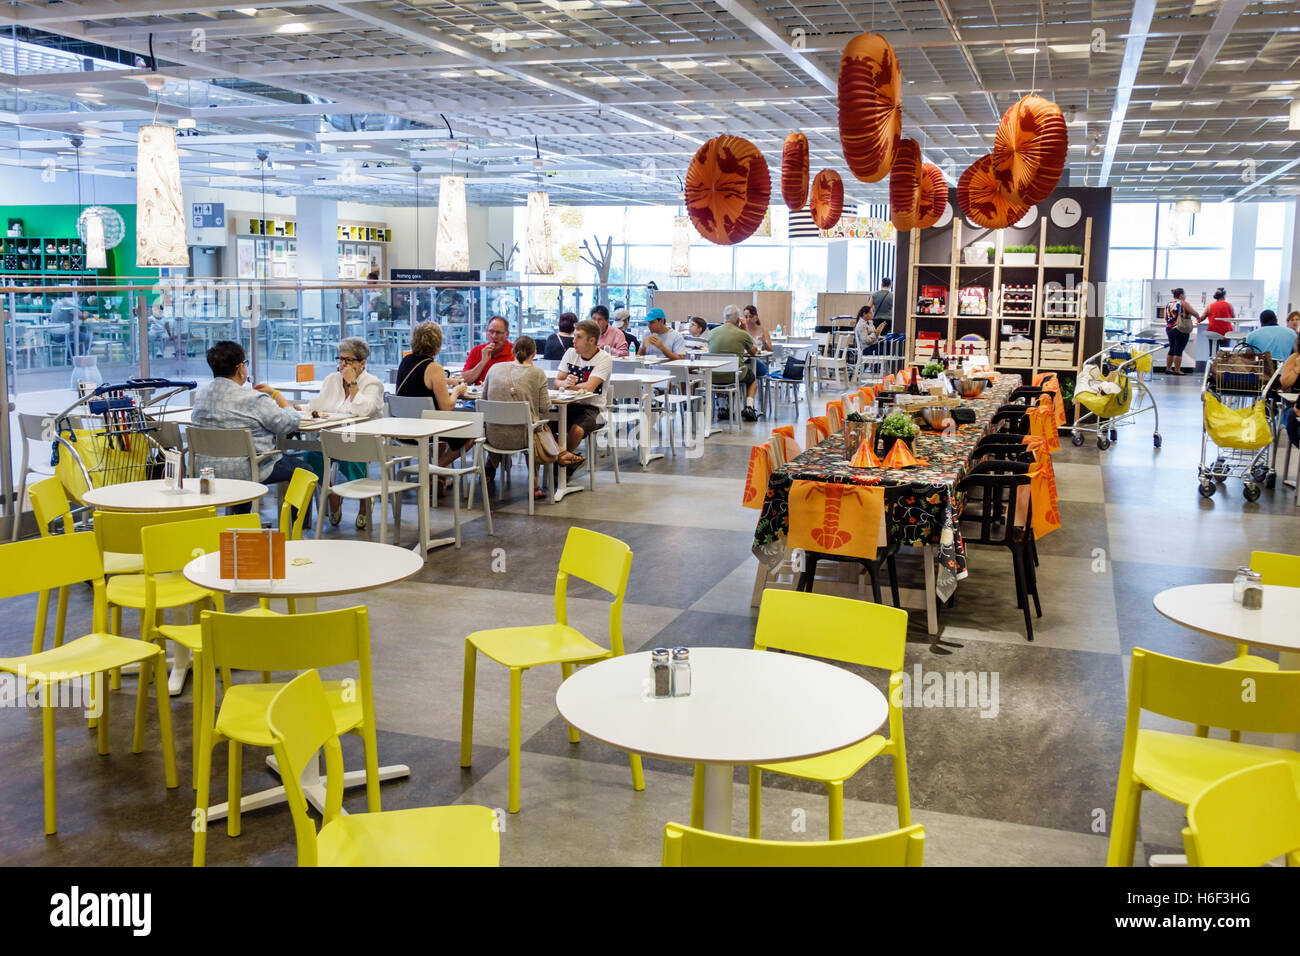 Ikea Cafè High Resolution Stock Photography and Images - Alamy